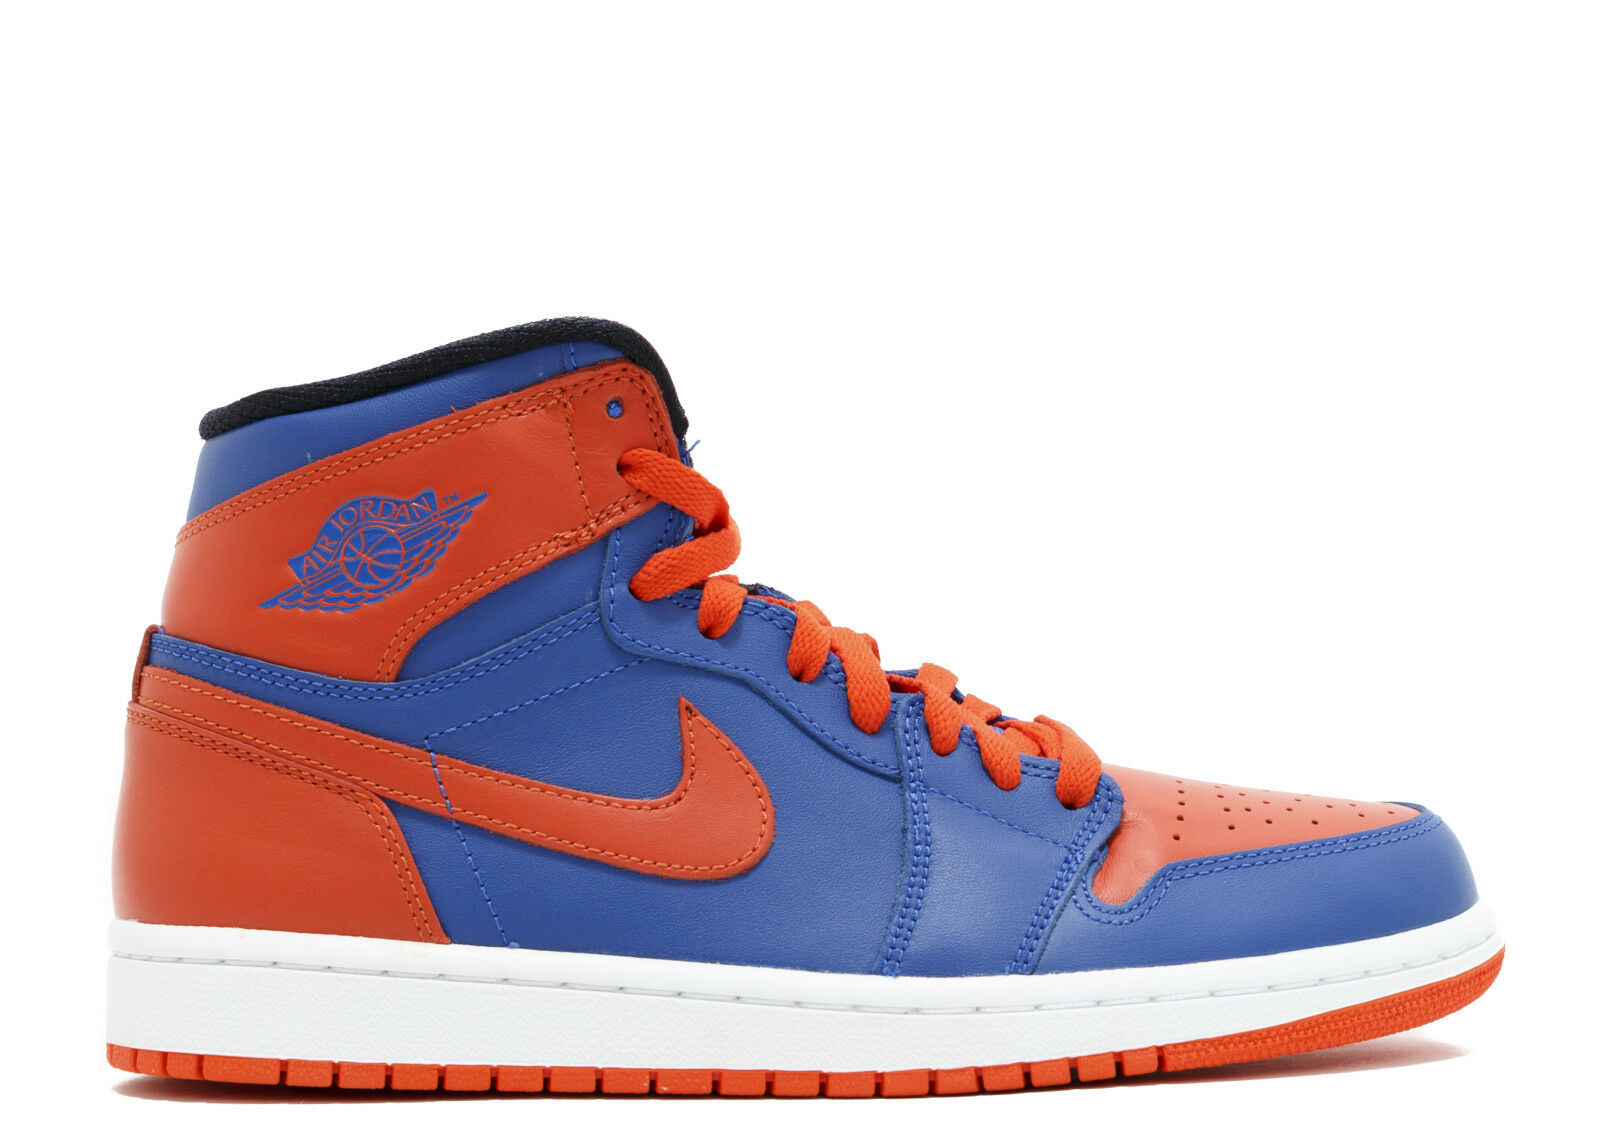 NIKE AIR JORDAN 1 Retro High OG OG OG KNICKS bROT toe off Weiß top EU 45/US 11NEW f9fac5